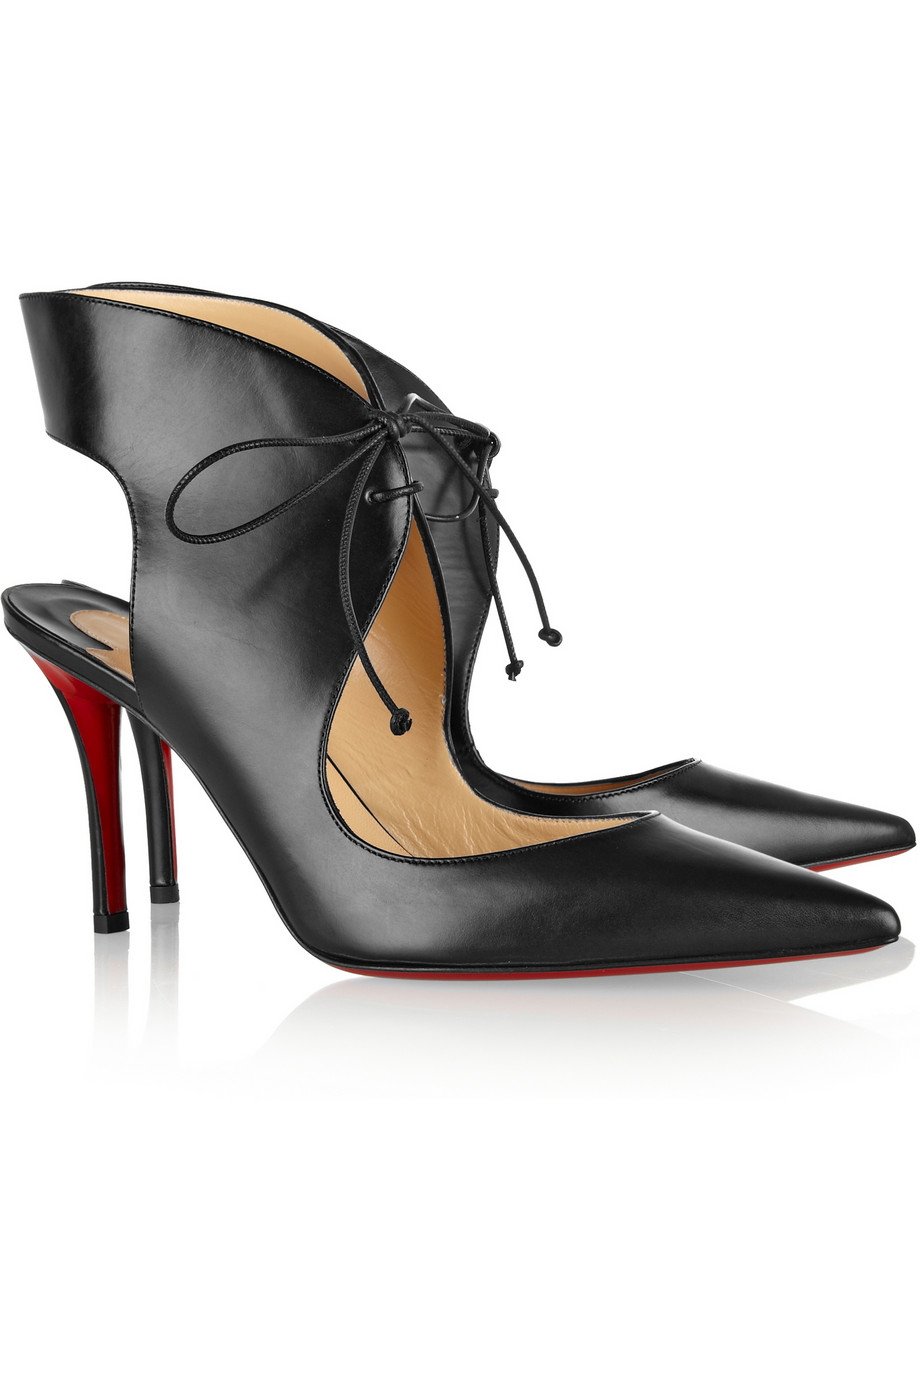 christian louboutin wedge sandals Black patent leather cutouts ...